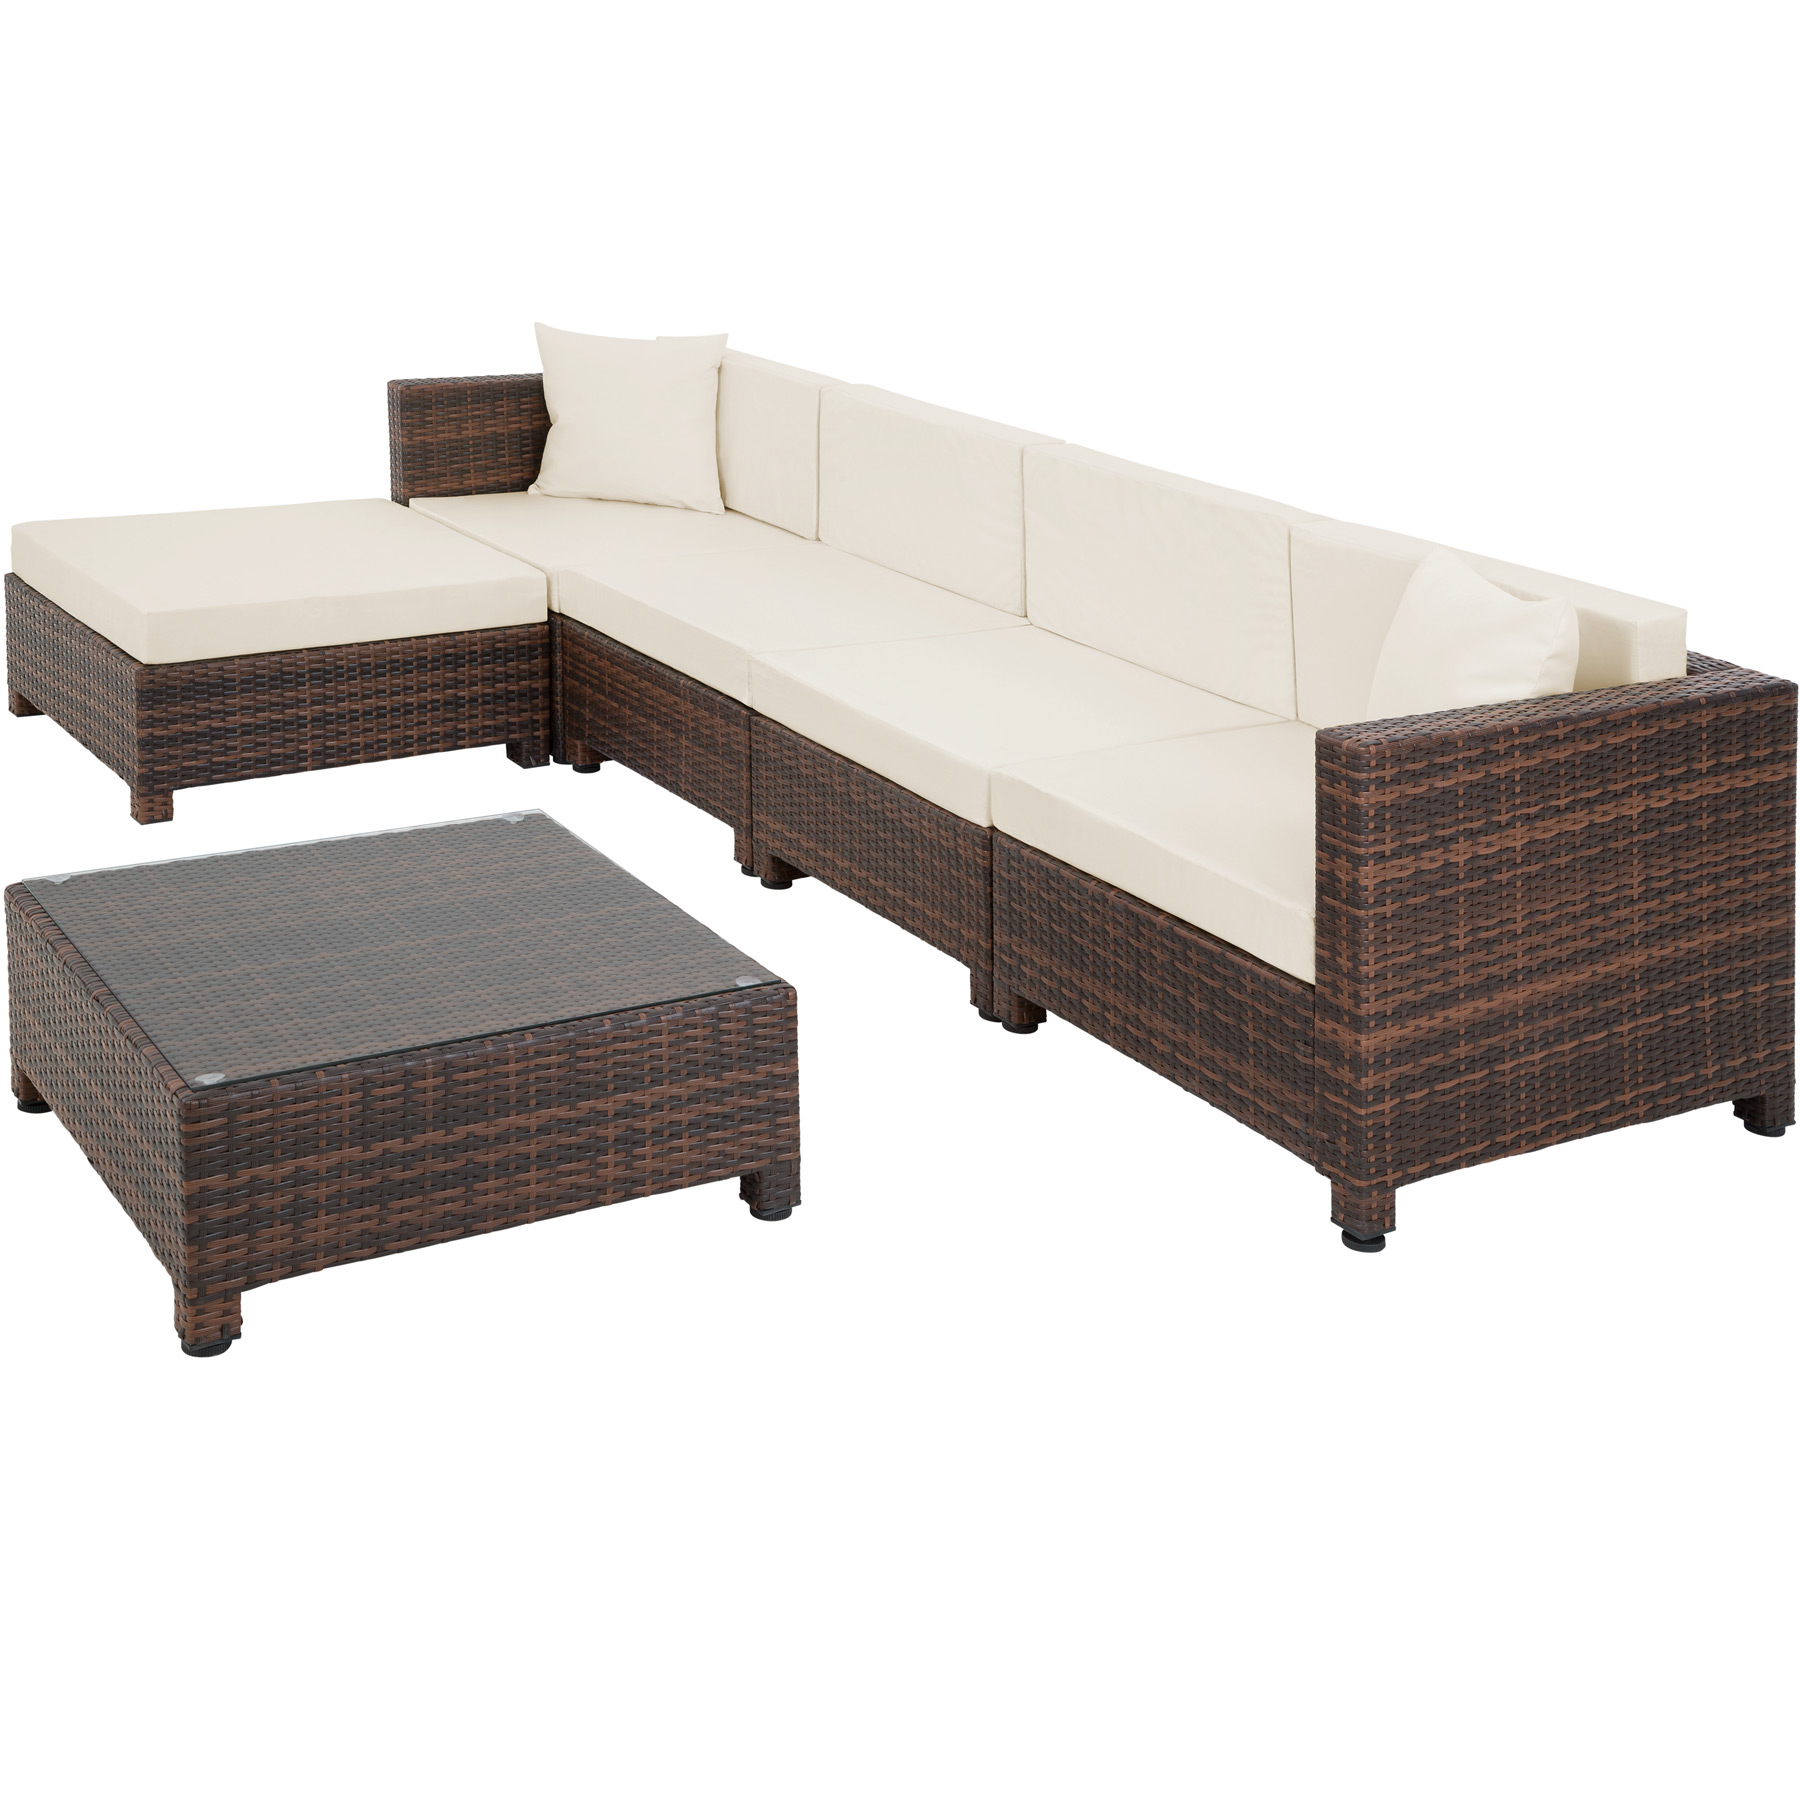 Luxury rattan aluminium garden furniture sofa set outdoor Most expensive outdoor furniture